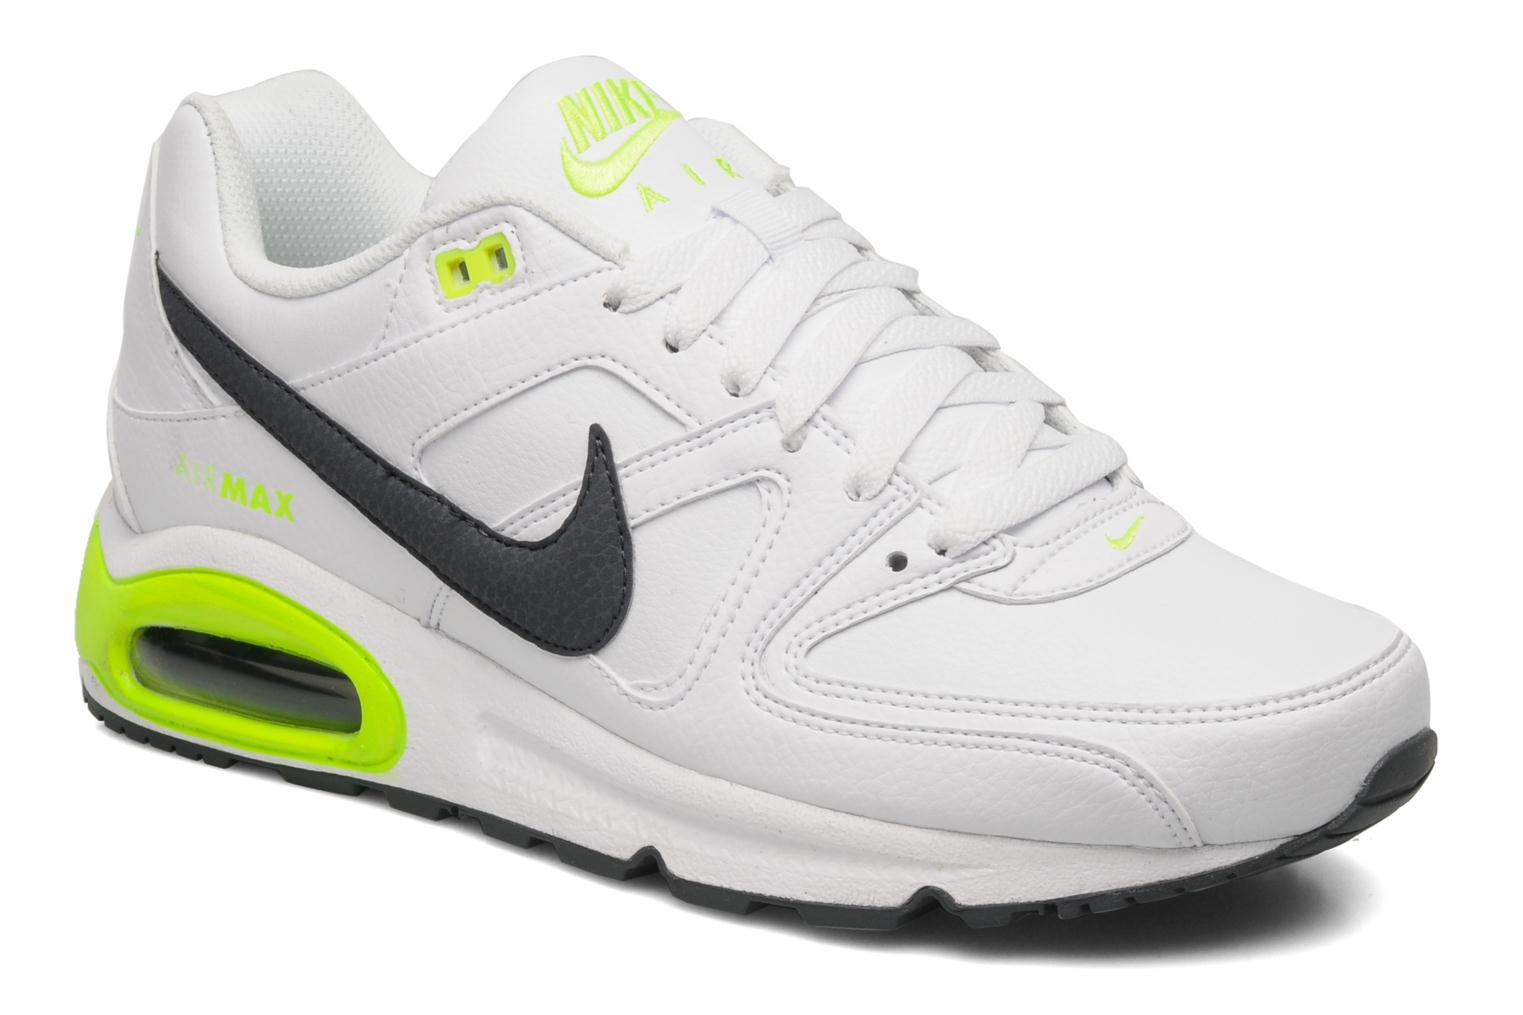 nike air max command images. Black Bedroom Furniture Sets. Home Design Ideas